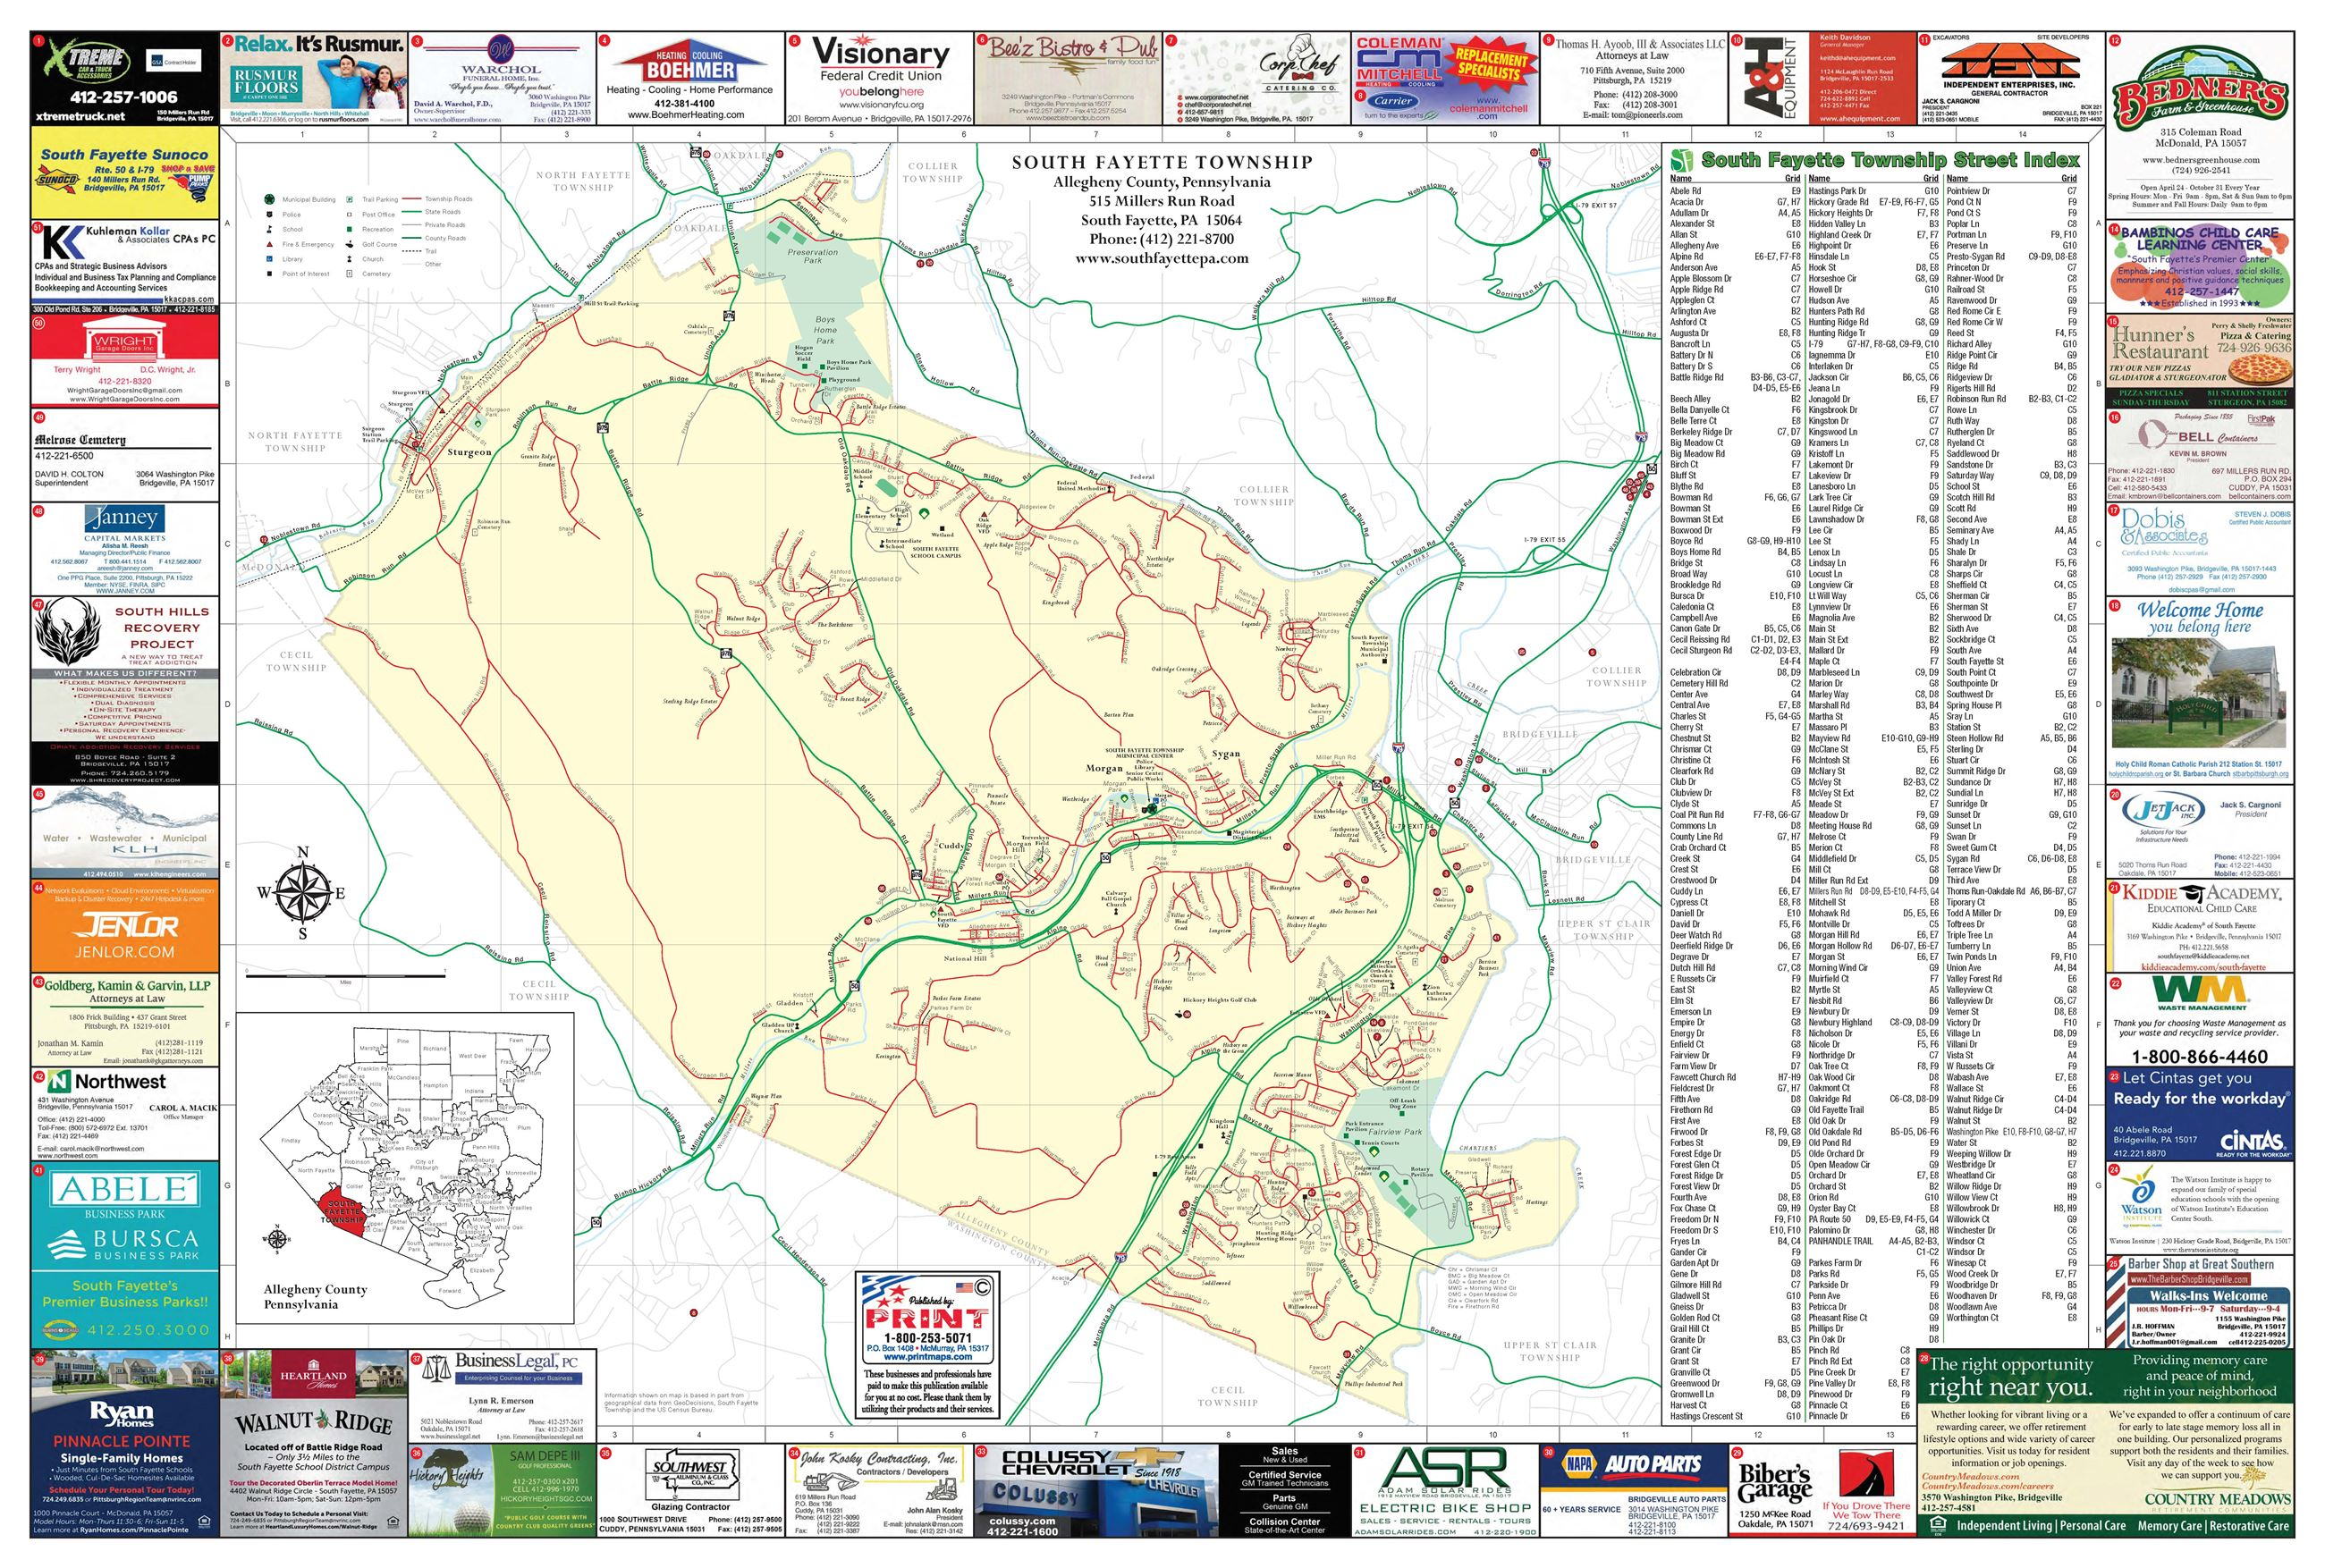 Maps | South Fayette Township, PA - Official Website